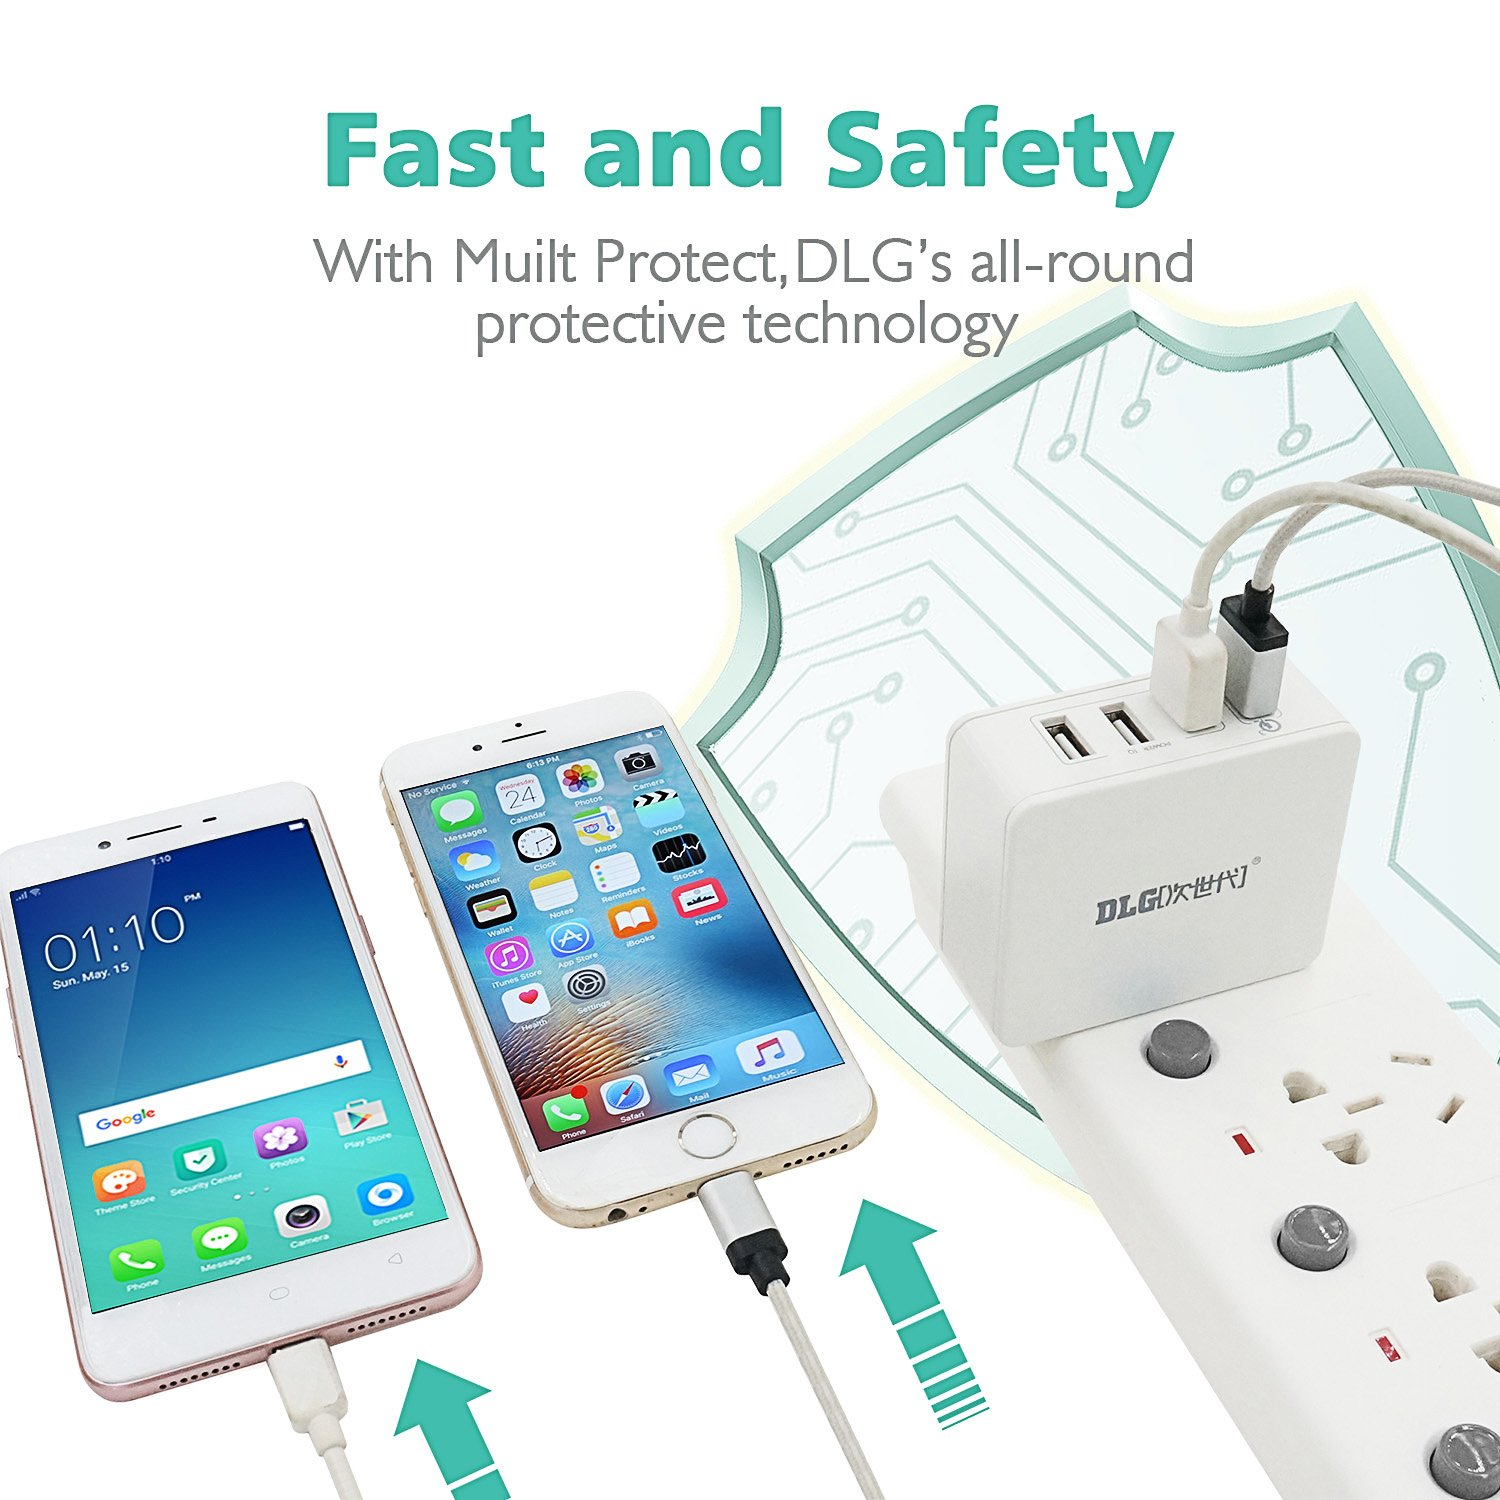 Dlg Qualcomm Certified Qc 30 Usb Wall Charger 4 Port Sony Xperia C Circuit Diagram Fast Charging Station With Quick Charge For Galaxy Lg Htc Z4